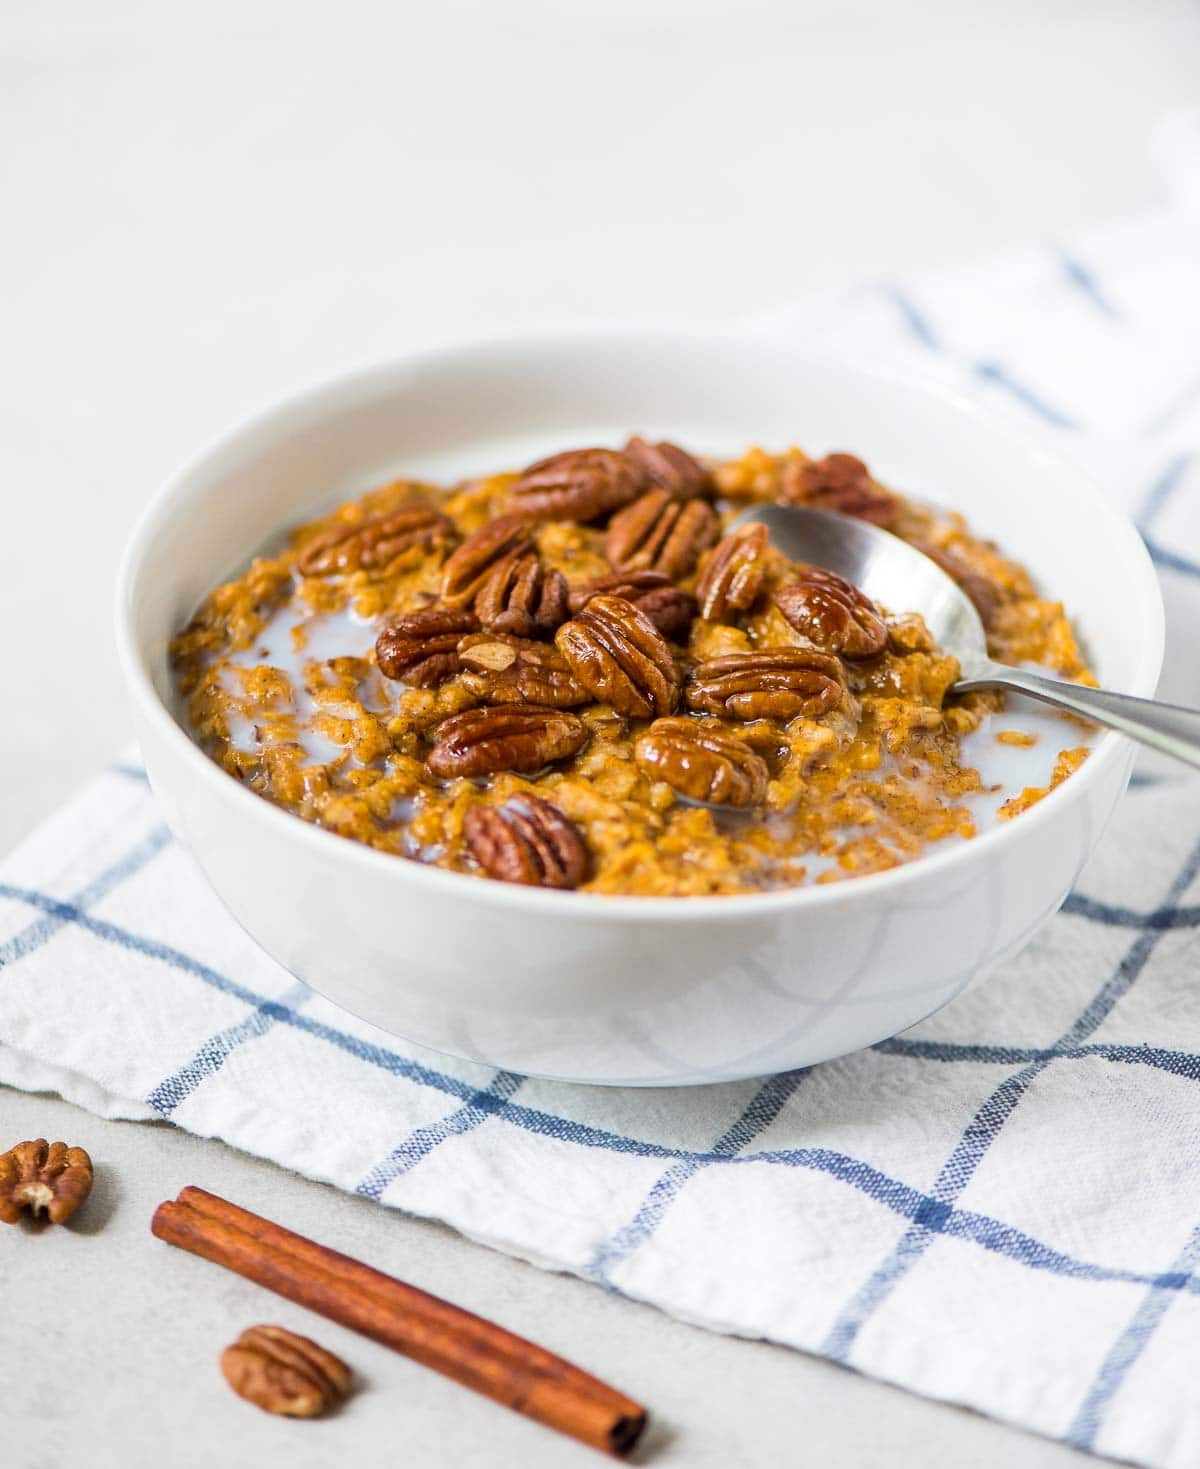 Slow Cooker Pumpkin Overnight Oats. Perfect for make-ahead breakfasts or to feed a holiday crowd. The crock pot does all the work! @wellplated